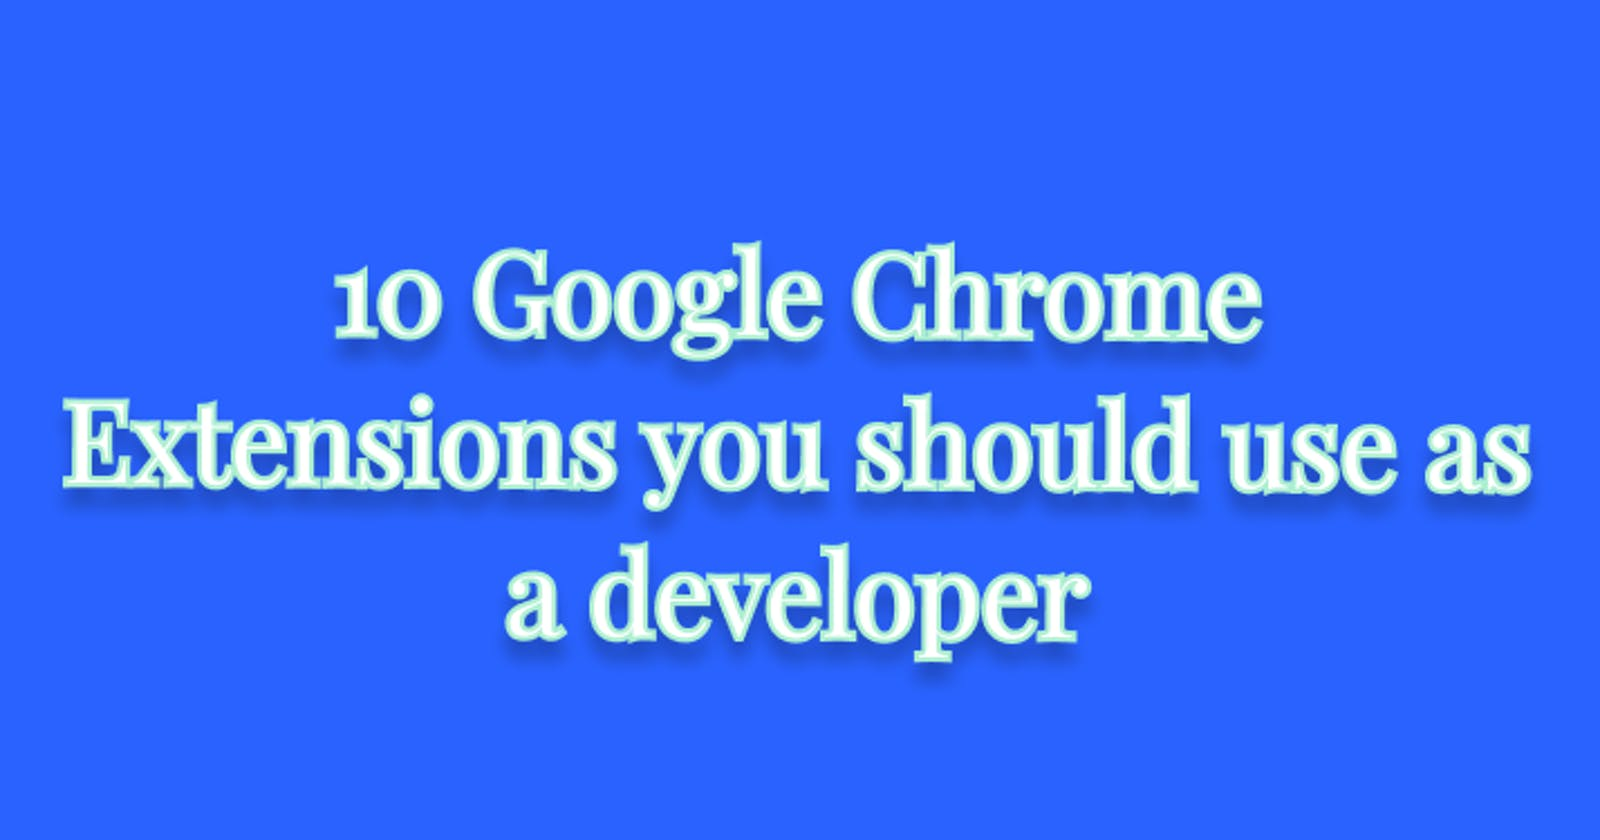 10 Google Chrome Extensions you should use as a developer